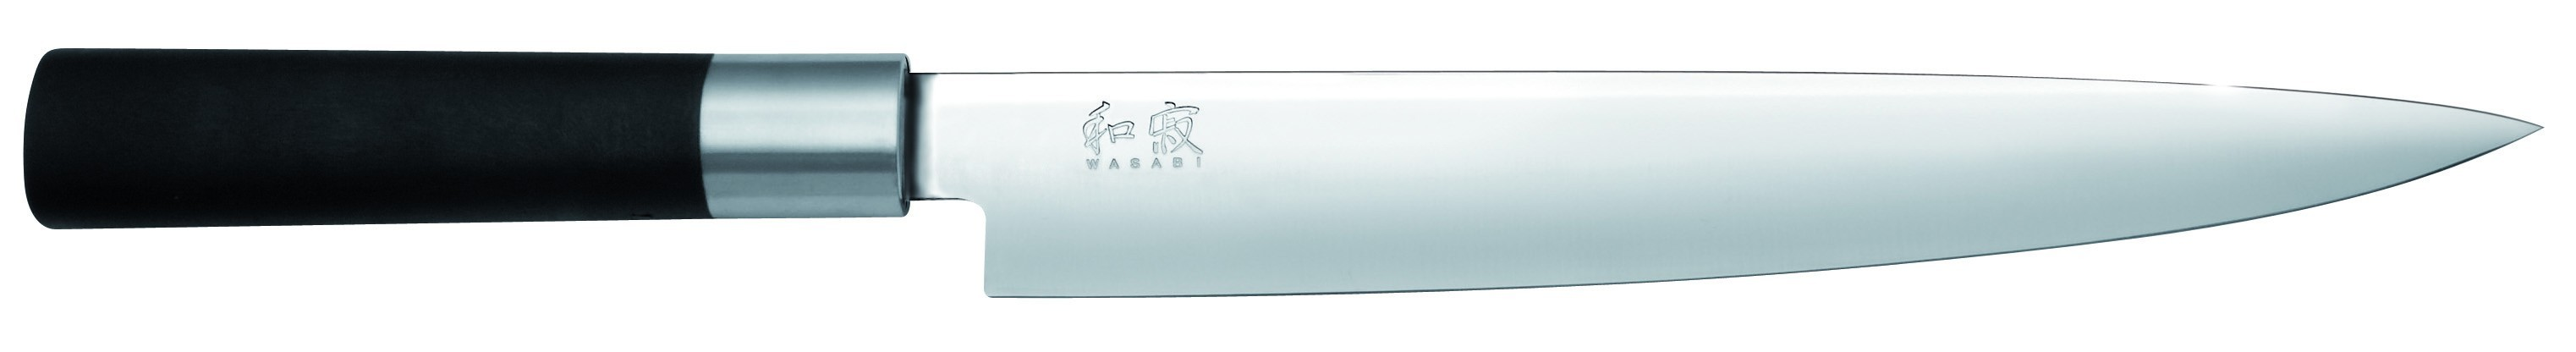 Cuchillo fileteador Kai Wasabi Black